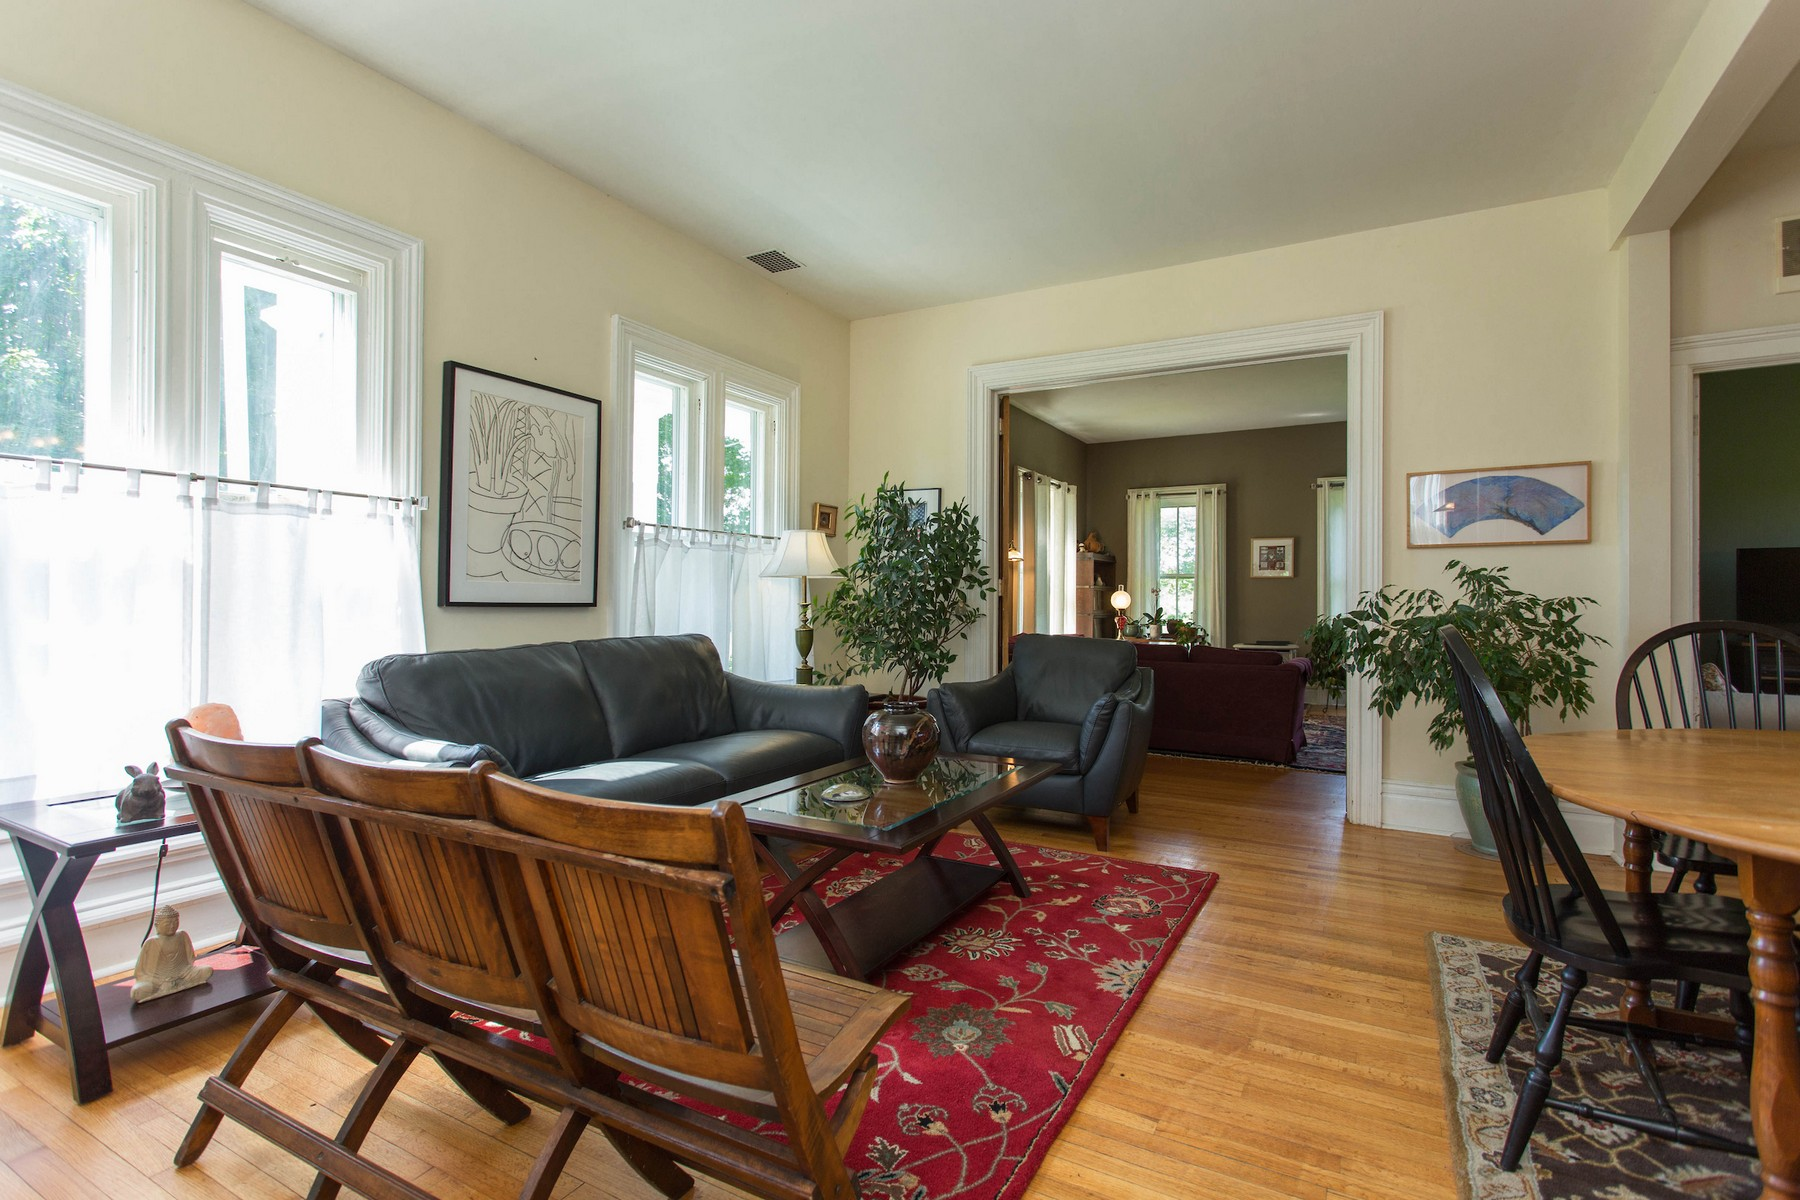 Additional photo for property listing at Stately Country Victorian 21  Filmore La Cambridge, Нью-Йорк 12816 Соединенные Штаты